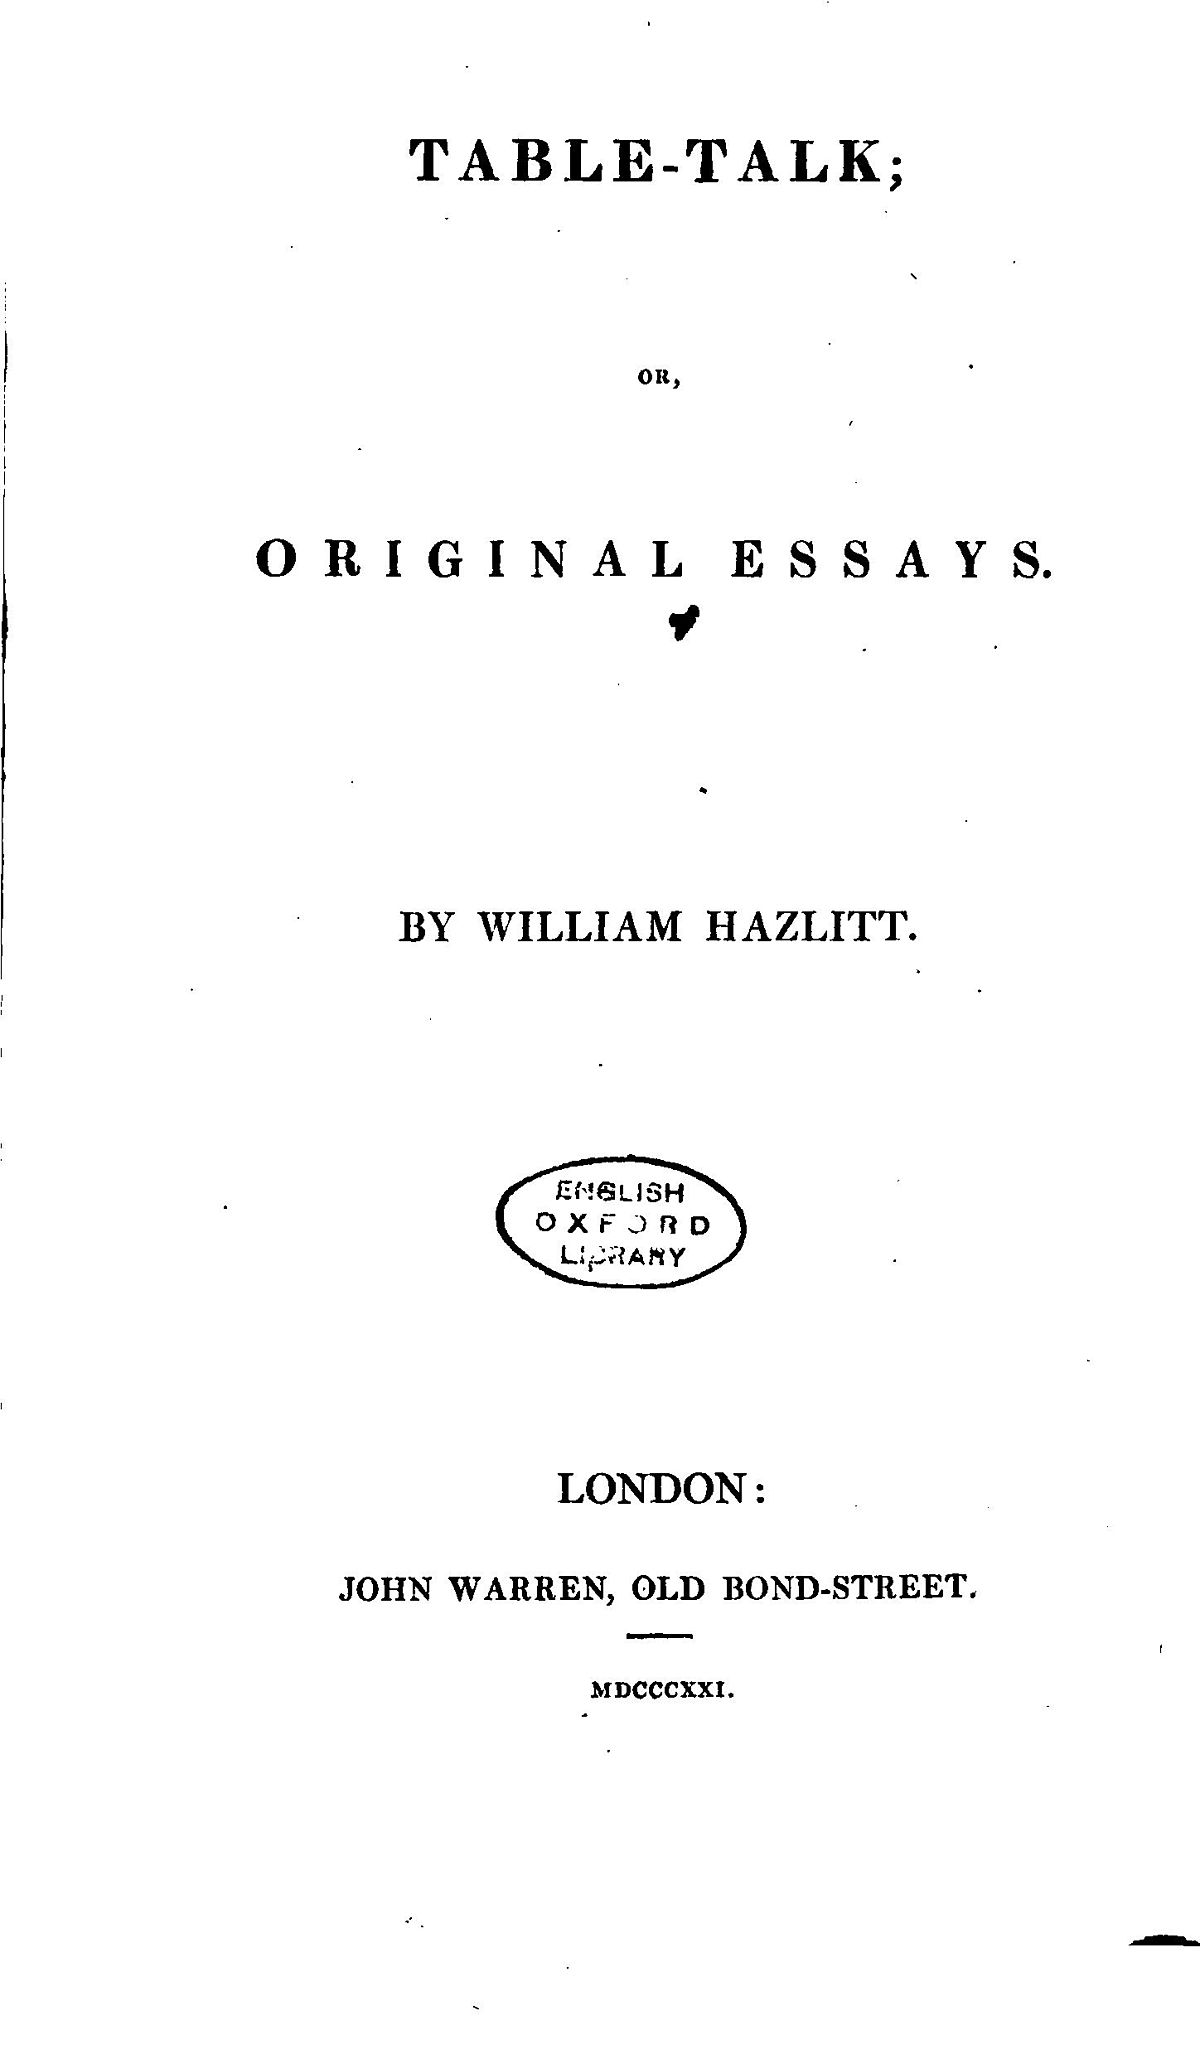 william hazlitt essays writing tabletalk hazlitt